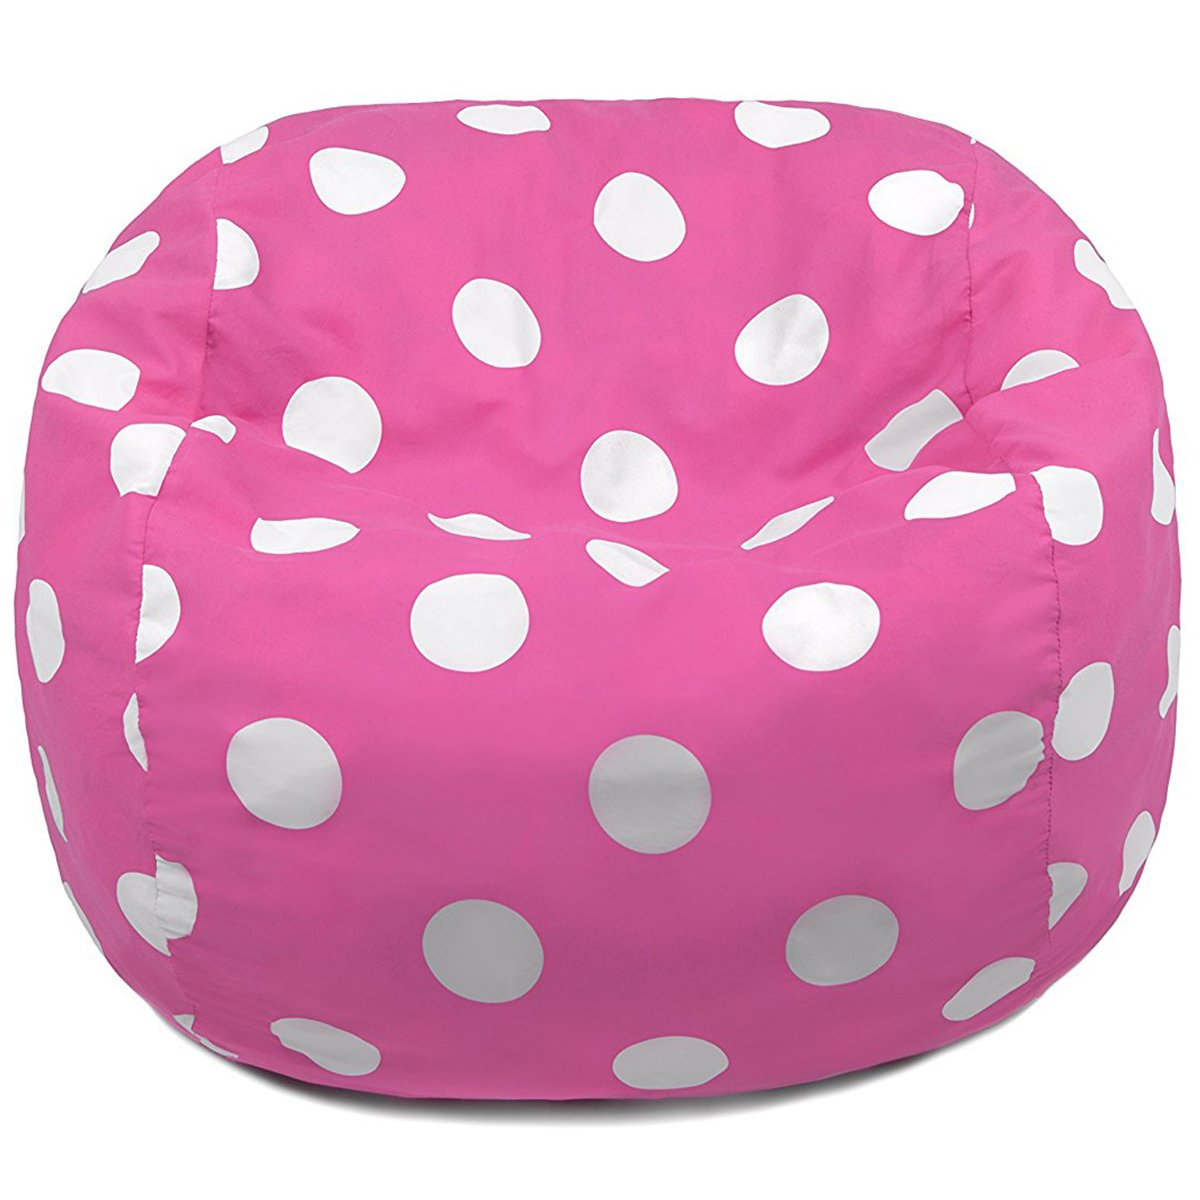 Candy Pink Polka Dots Oversized Bean Bag Chair  sc 1 st  Architecture Lab & 17 Best Bean Bag Chairs of 2018 to Consider for Your Living Room ...